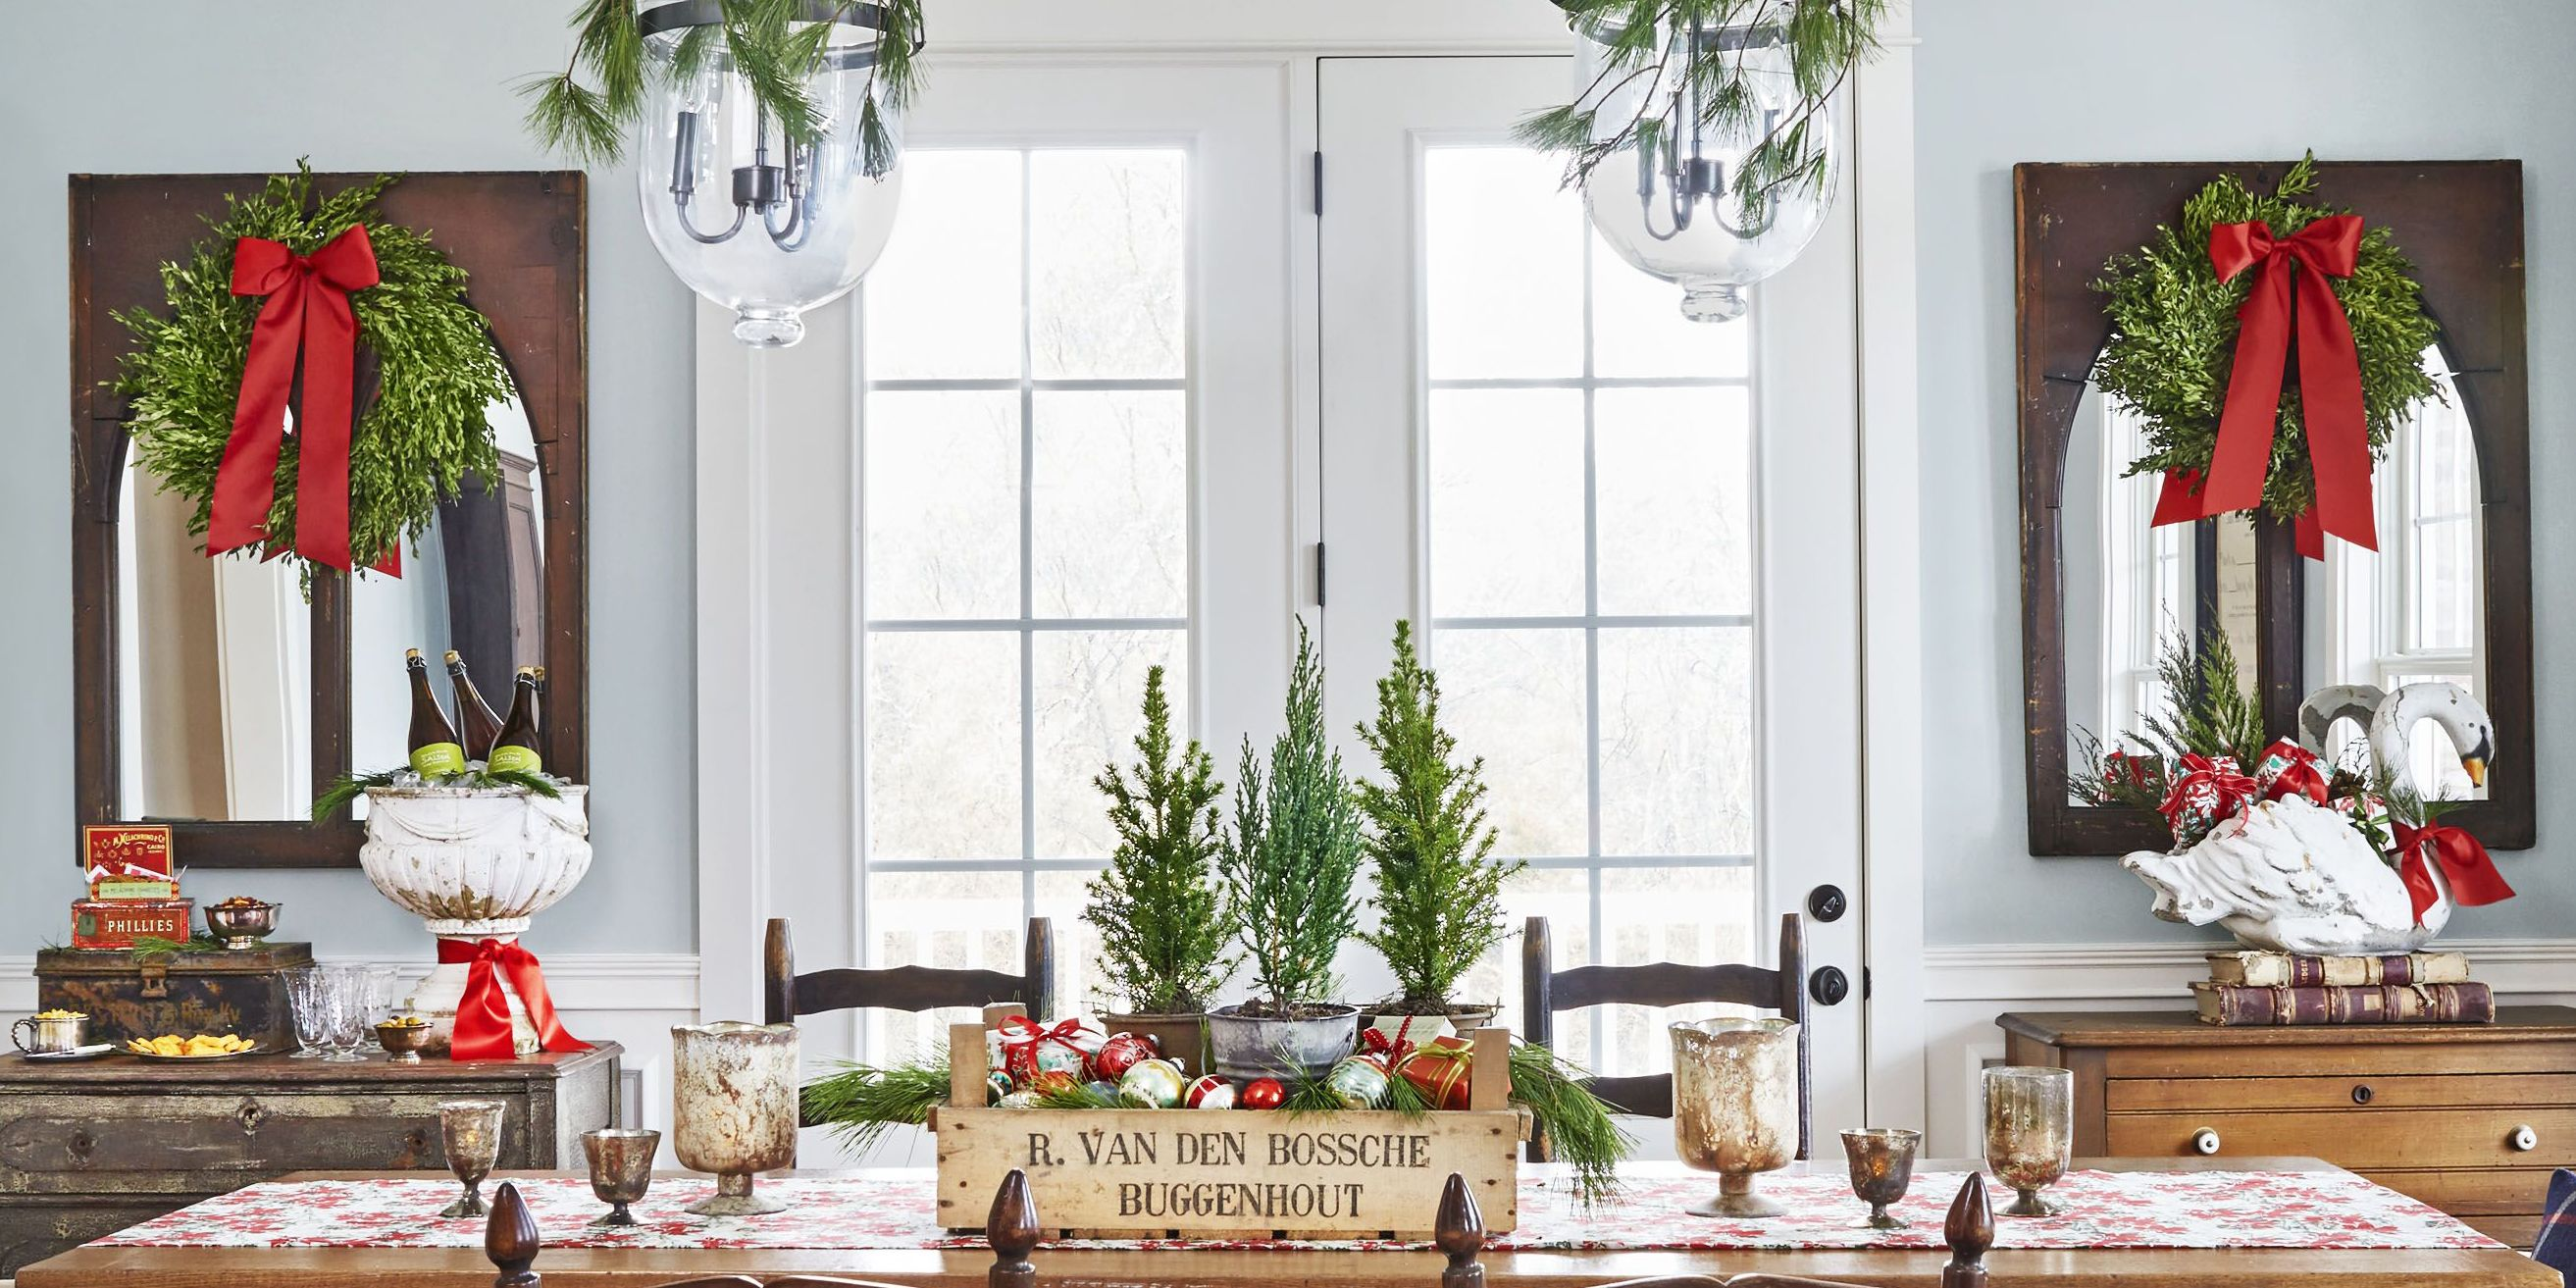 35+ Best Christmas Table Settings - Decorations and Centerpiece Ideas for Your Christmas Table : dining-room-table-christmas-decorations - designwebi.com